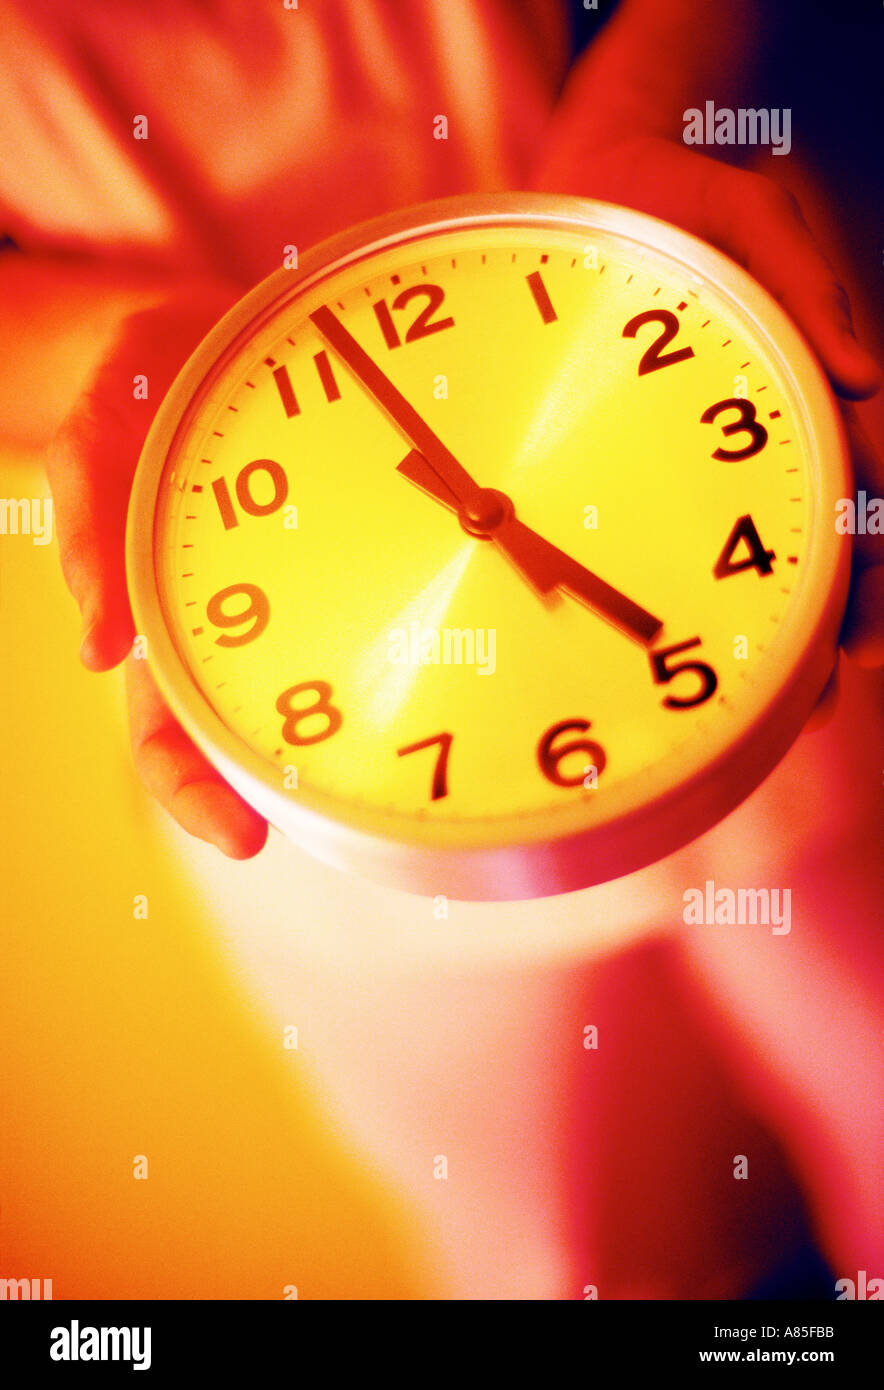 CLOCK CLOSE TO BREAKING TIME 5 FIVE O'CLOCK - Stock Image